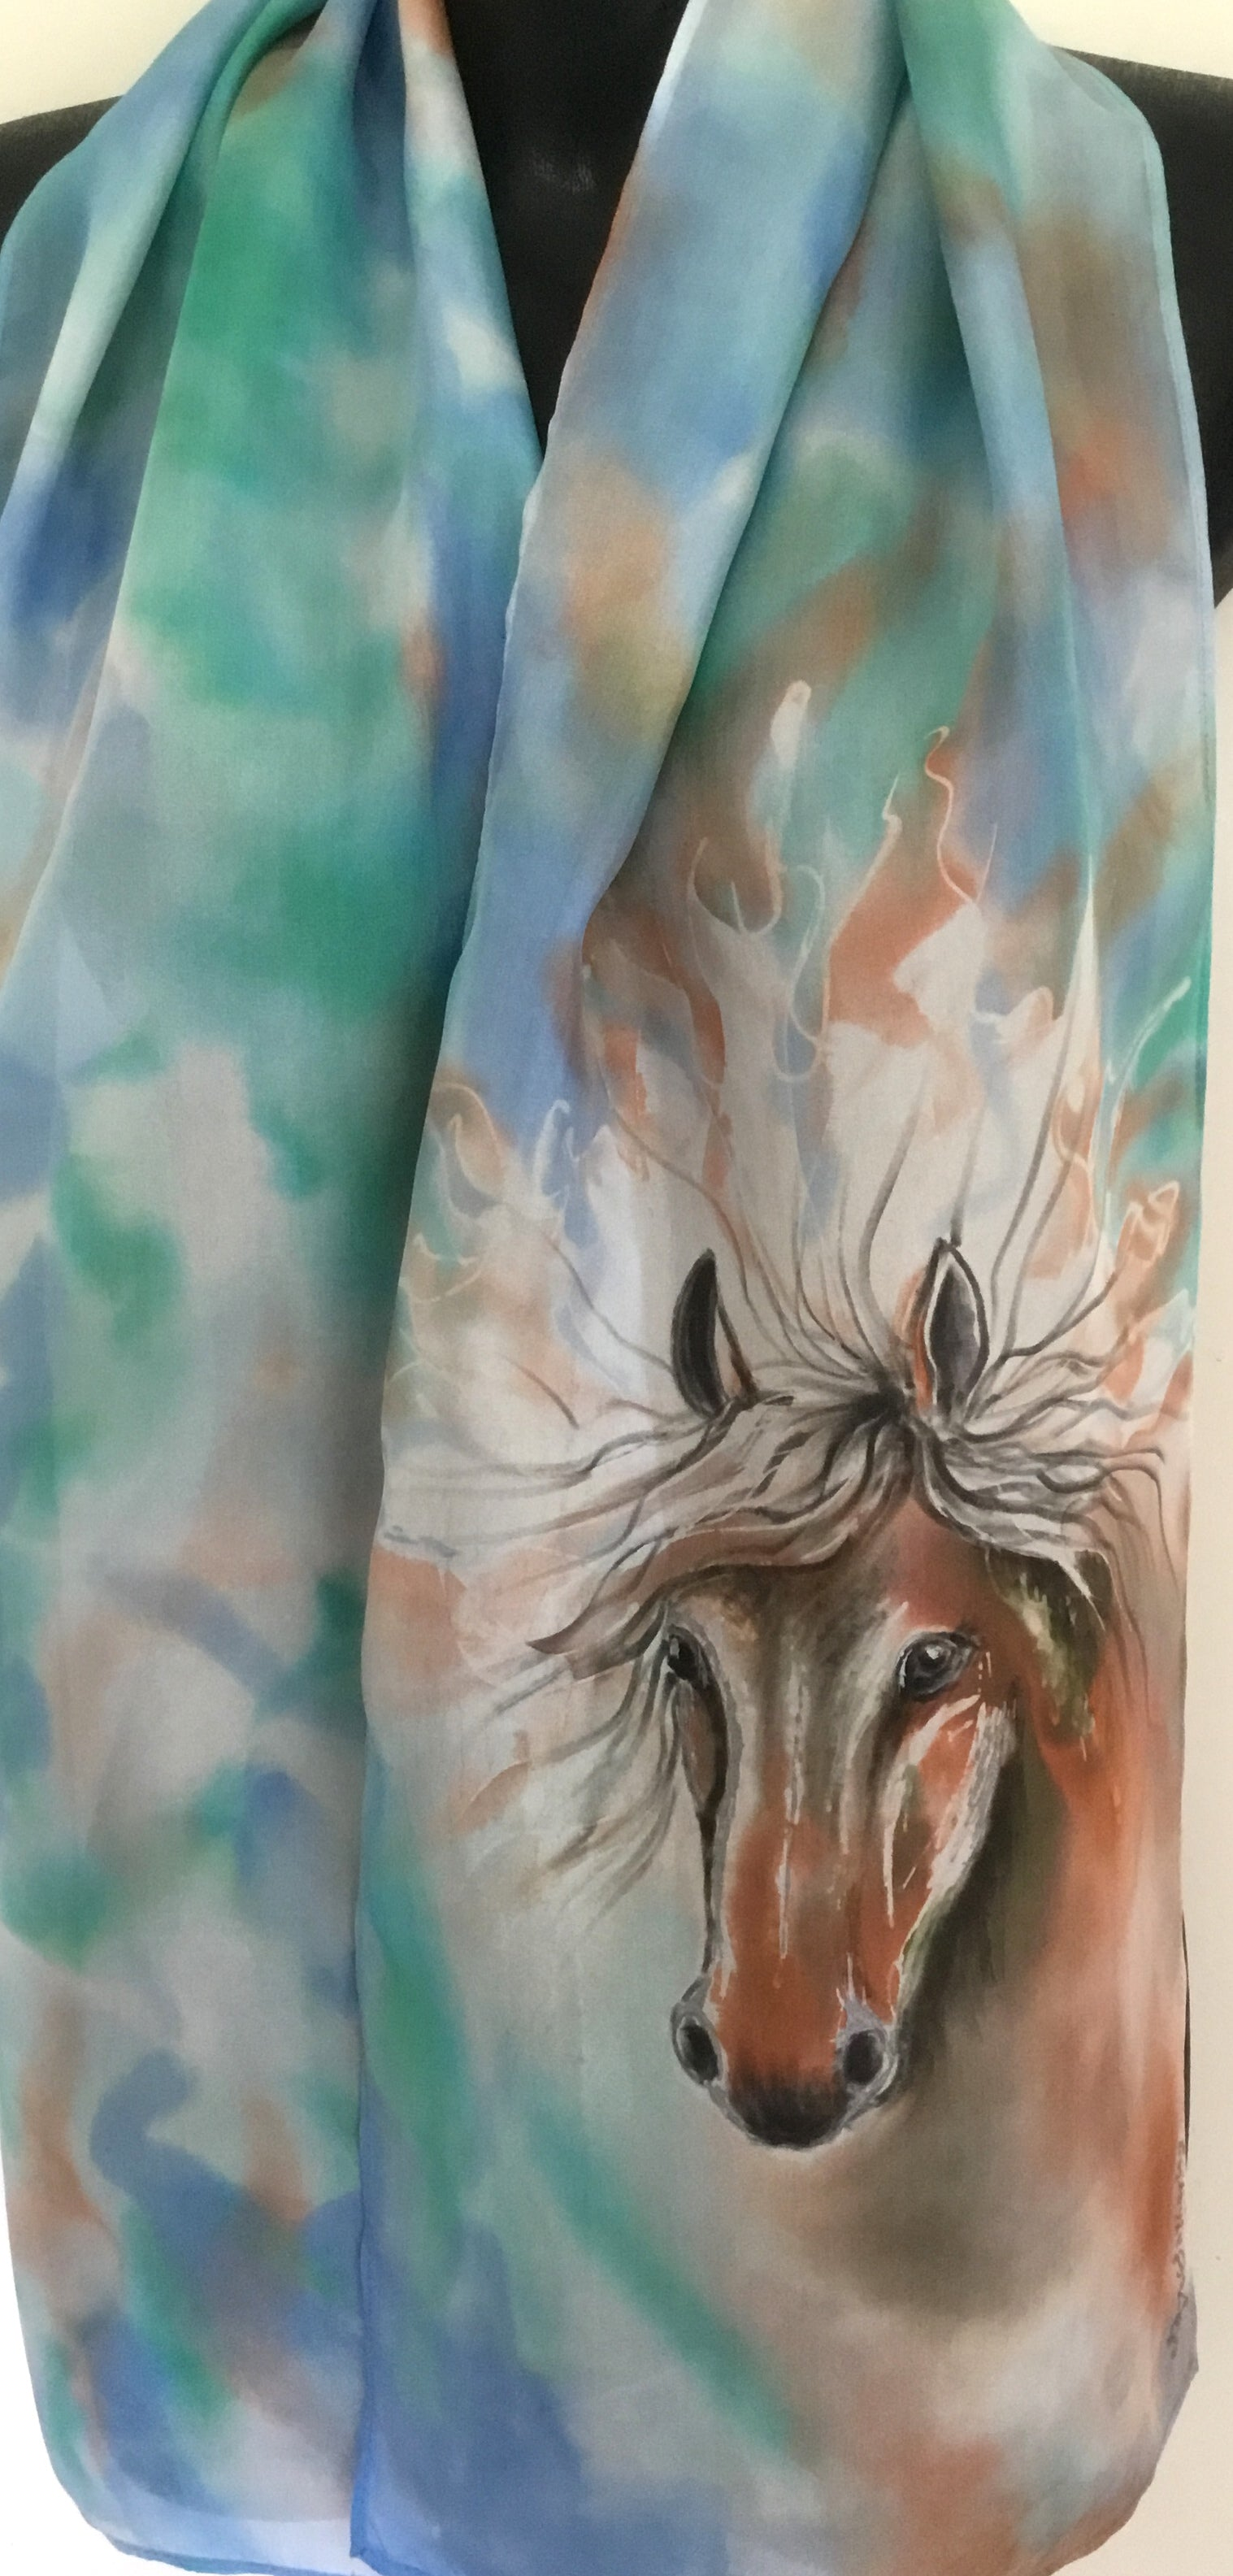 Horse Portrait - Hand painted Silk Scarf - Satherley Silks NZ